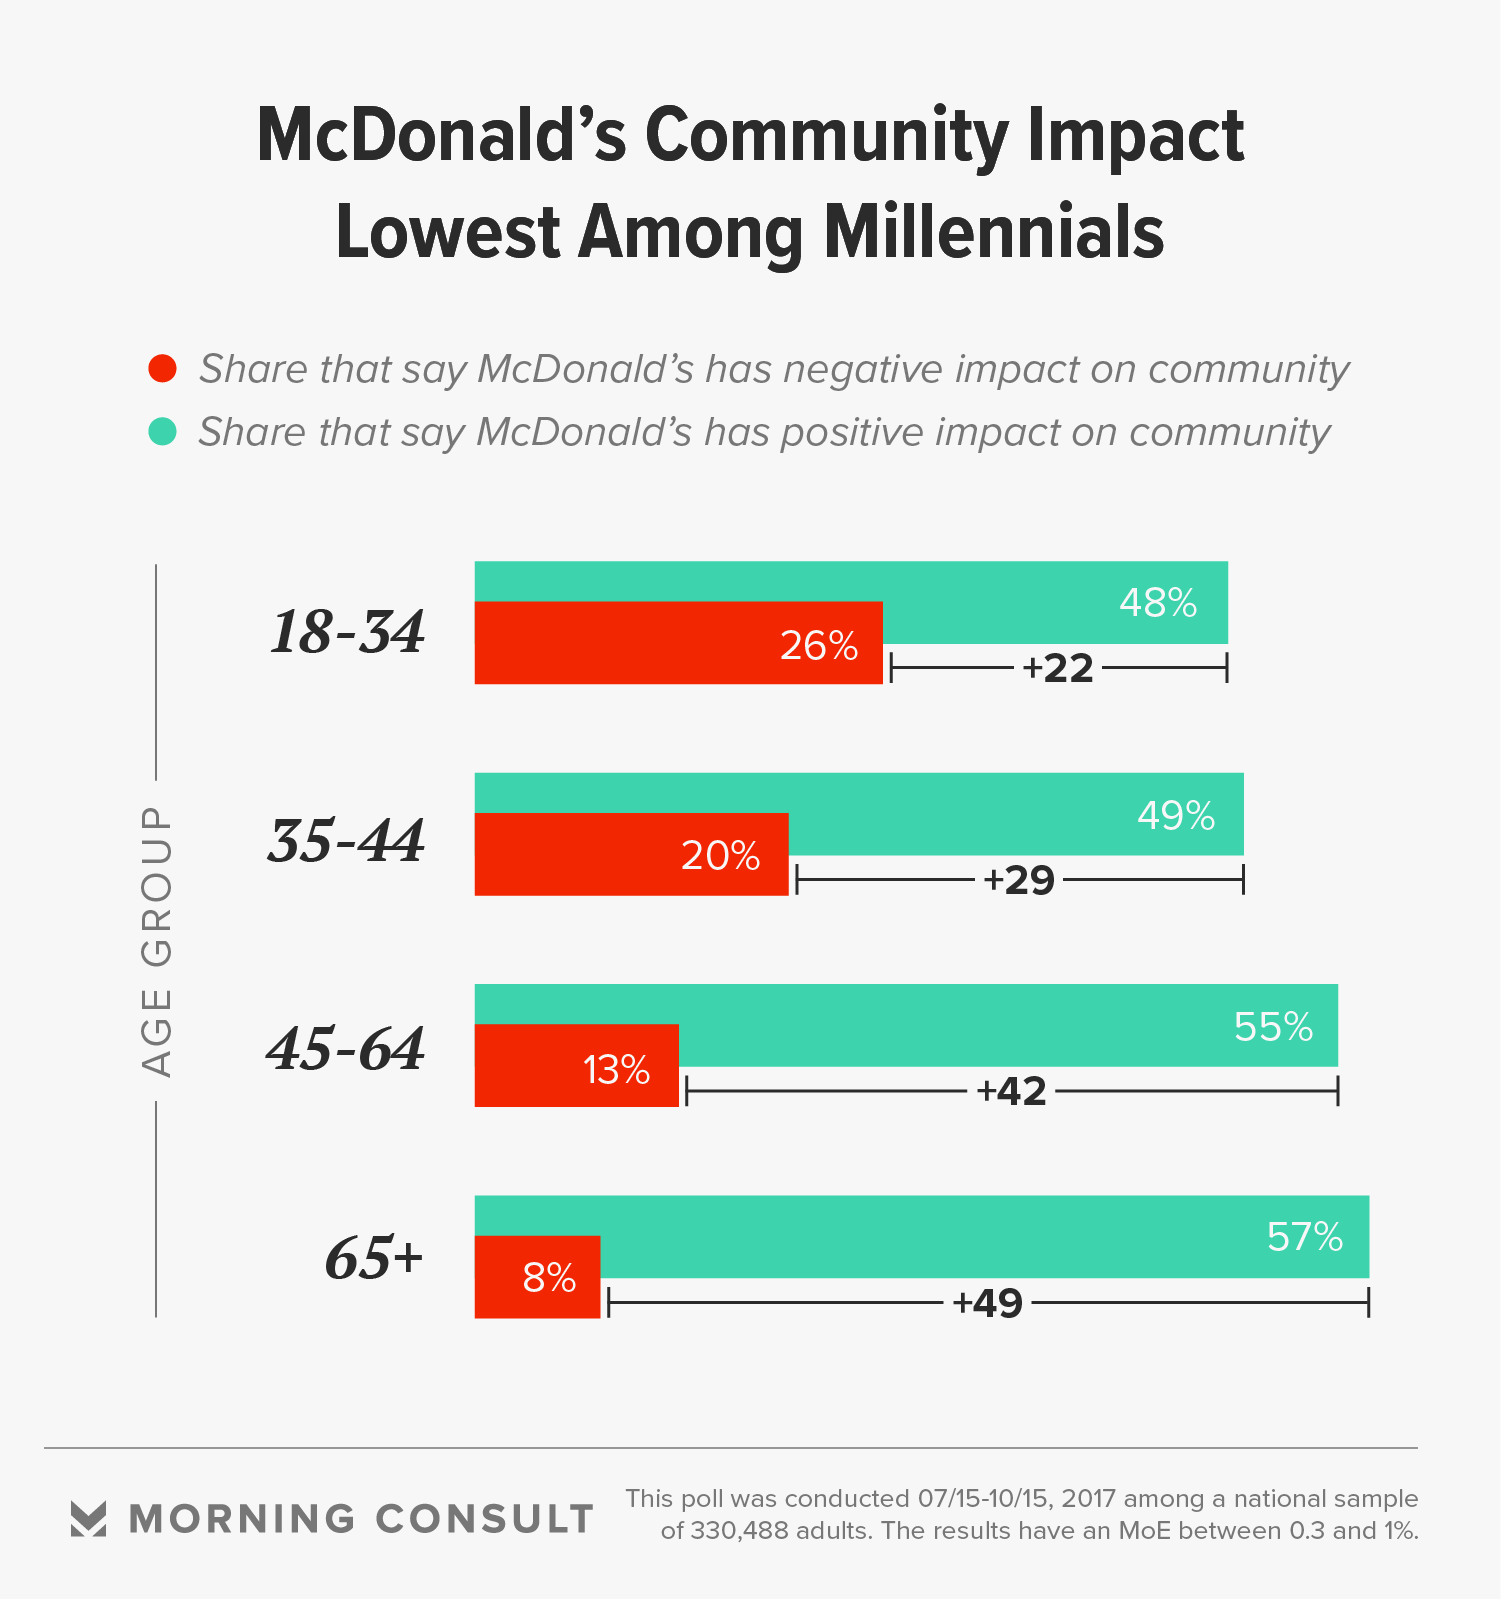 "negative and positive impact of mcdonalds restaurant on the community 01-05-2014 mcdonald's new social impact goals target salt, sugar, and fat by  venessa wong share this article facebook twitter linkedin  community • support children  goals are the most important to consumers, langert says, including healthy menu choices and sourcing ""we're a restaurant company that serves food,."